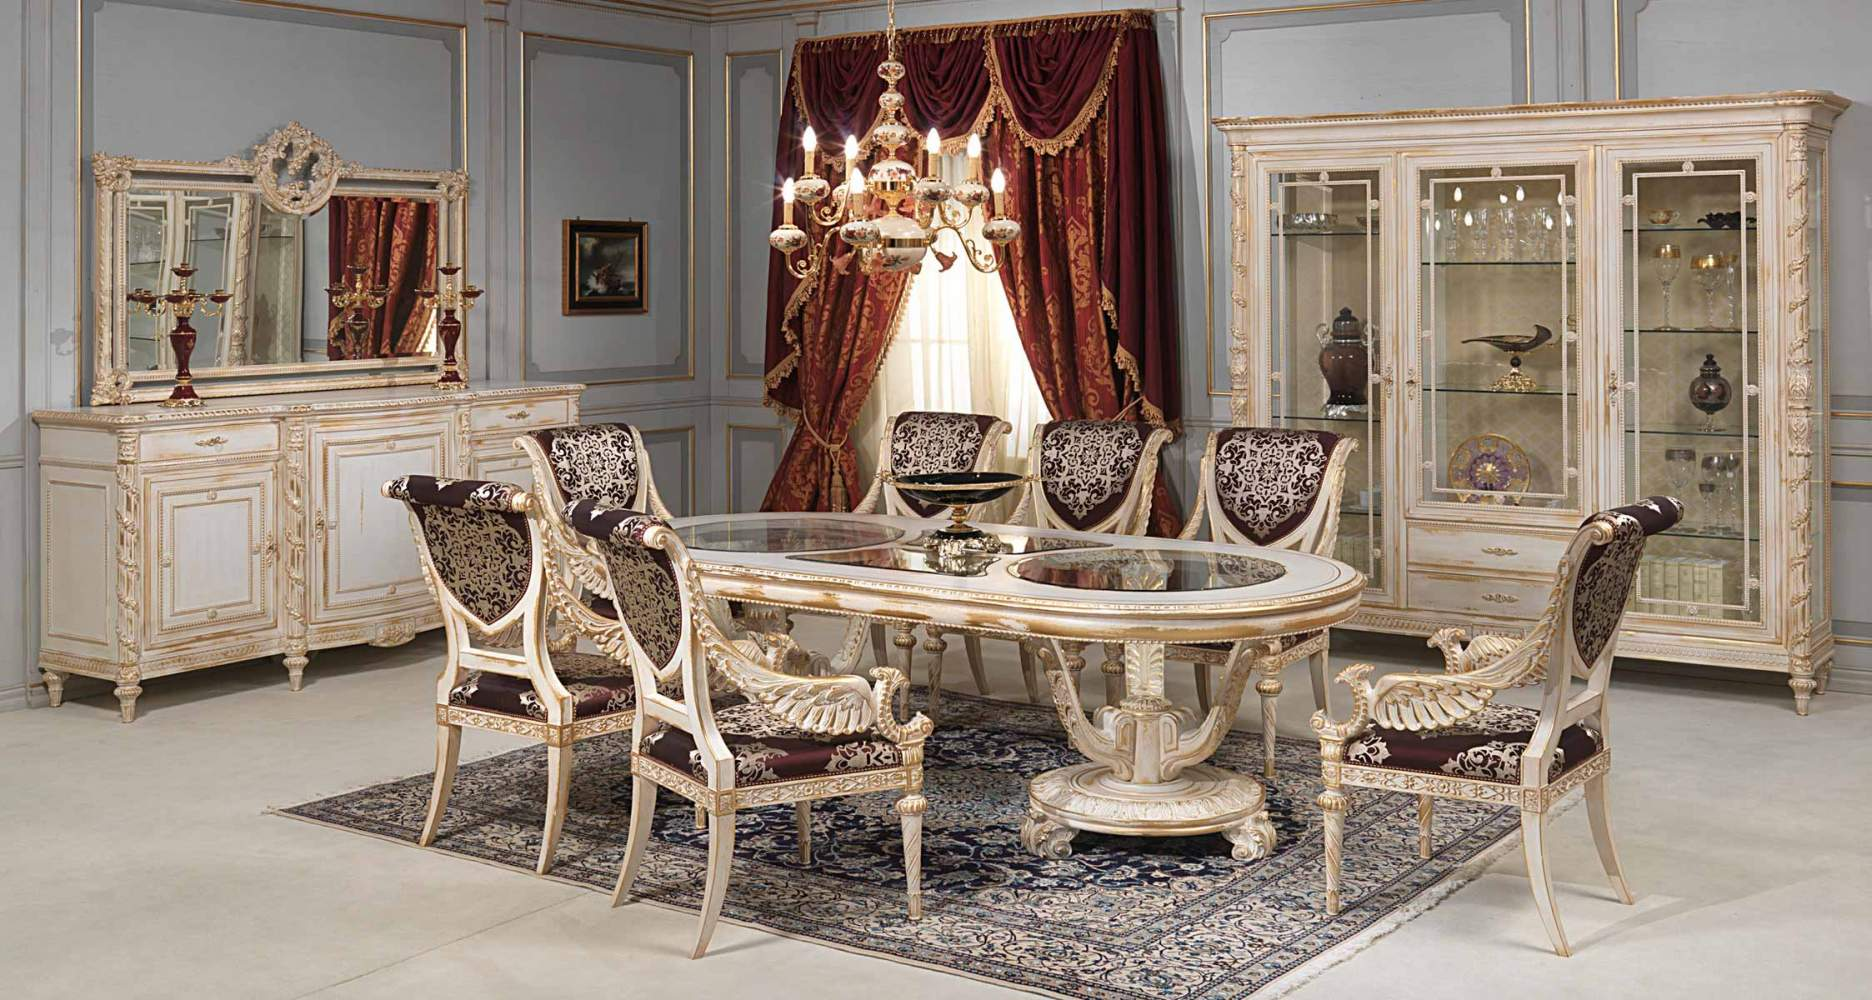 white and gold dining room in louis xvi style vimercati classic furniture. Black Bedroom Furniture Sets. Home Design Ideas